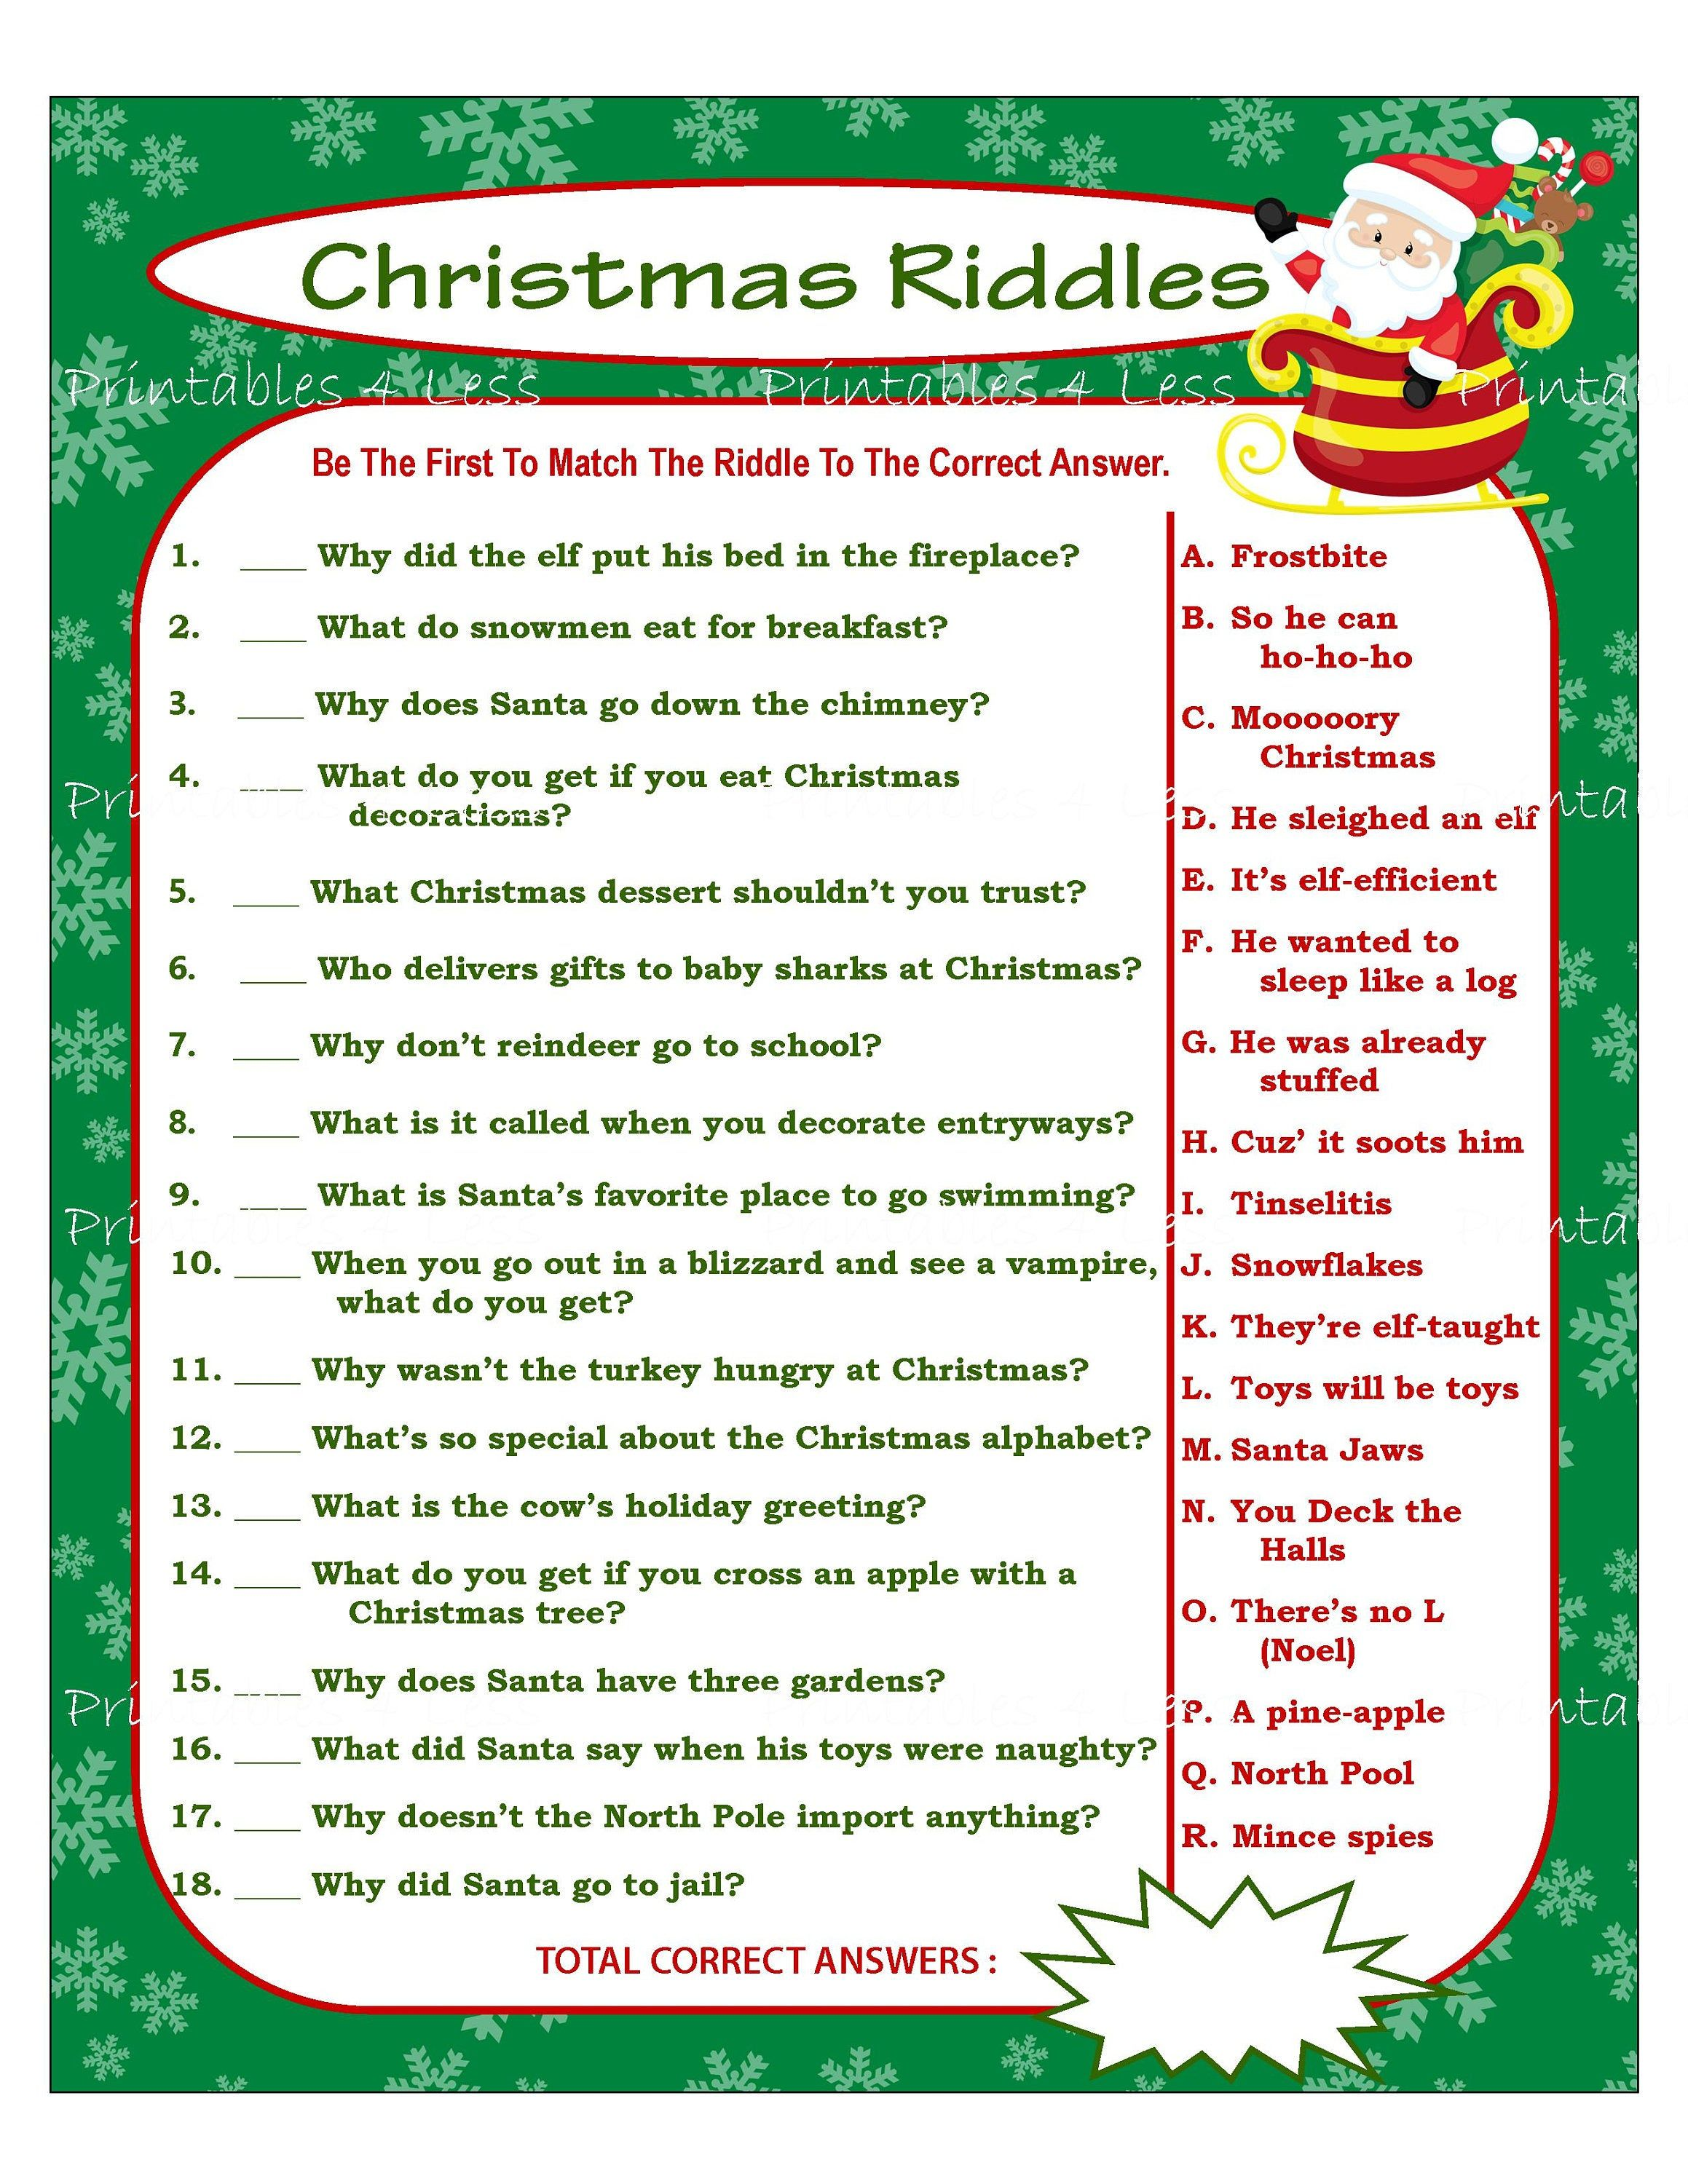 Christmas Riddles Christmas Party Game Holiday Party Game Etsy Christmas Riddles Printable Christmas Games Holiday Party Games